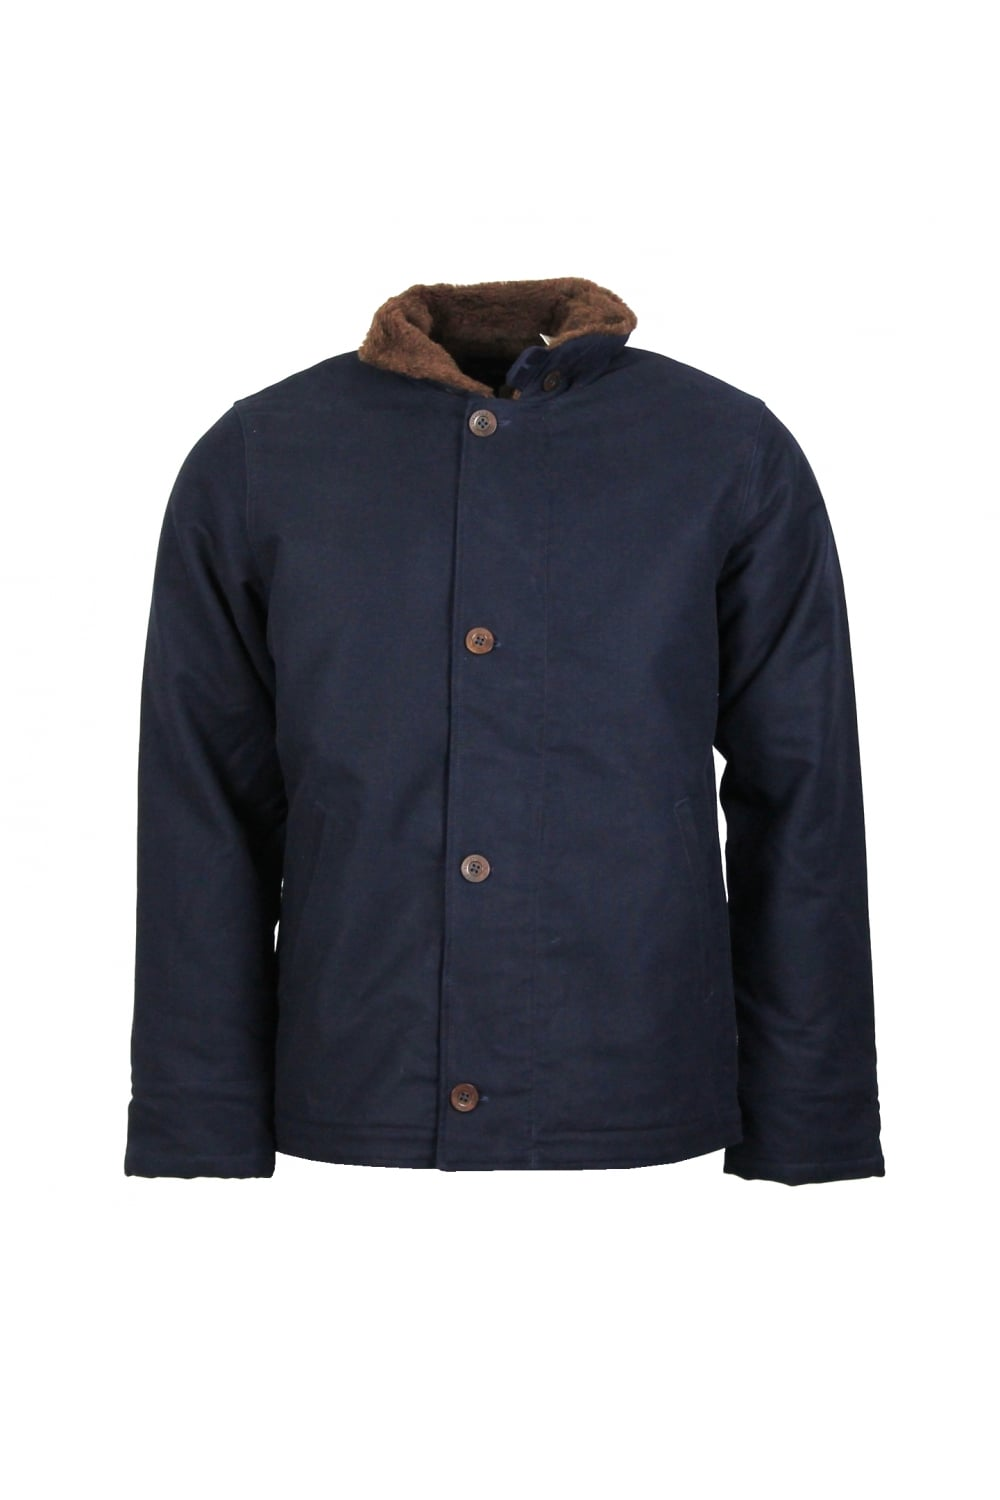 882195f39e338 Levi s Deck Coat (Nightwatch Blue)